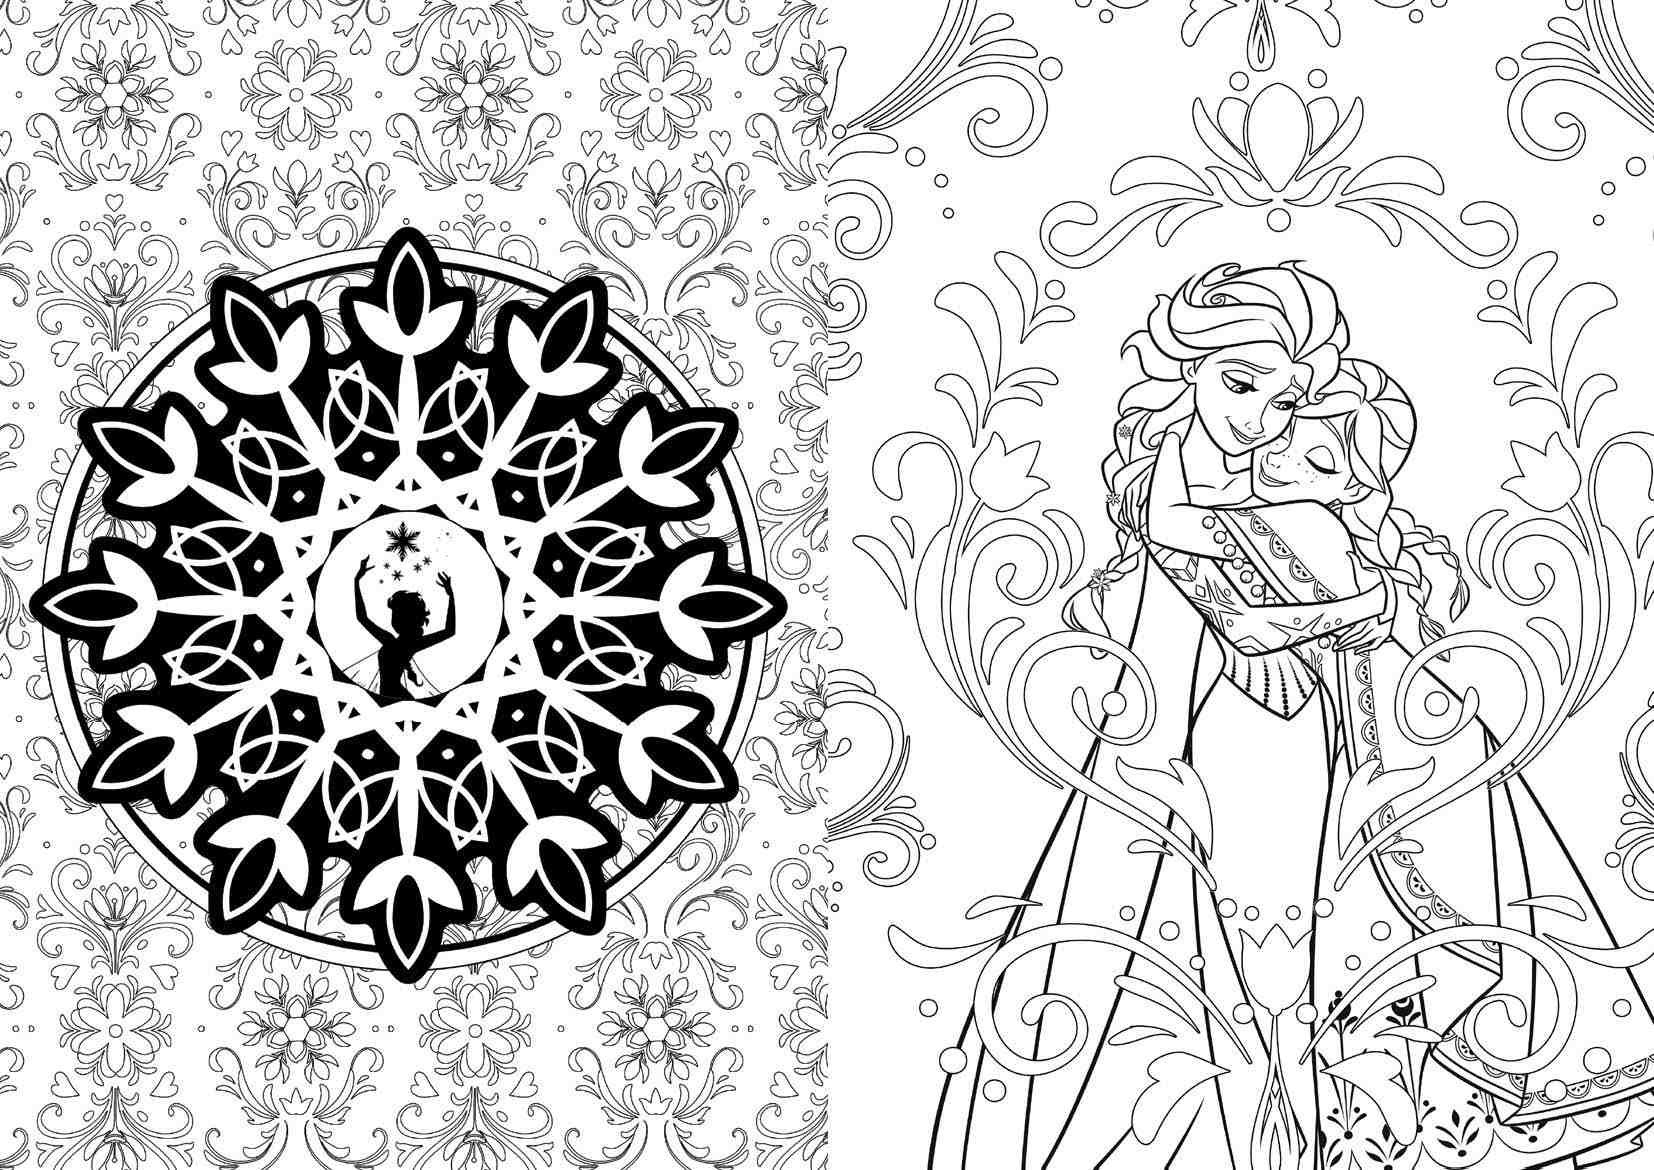 Frozen Sisters Love Free Coloring Page • Disney Frozen Kids Collection Of Walt Disney Coloring Pages Marie Walt Disney Characters Download